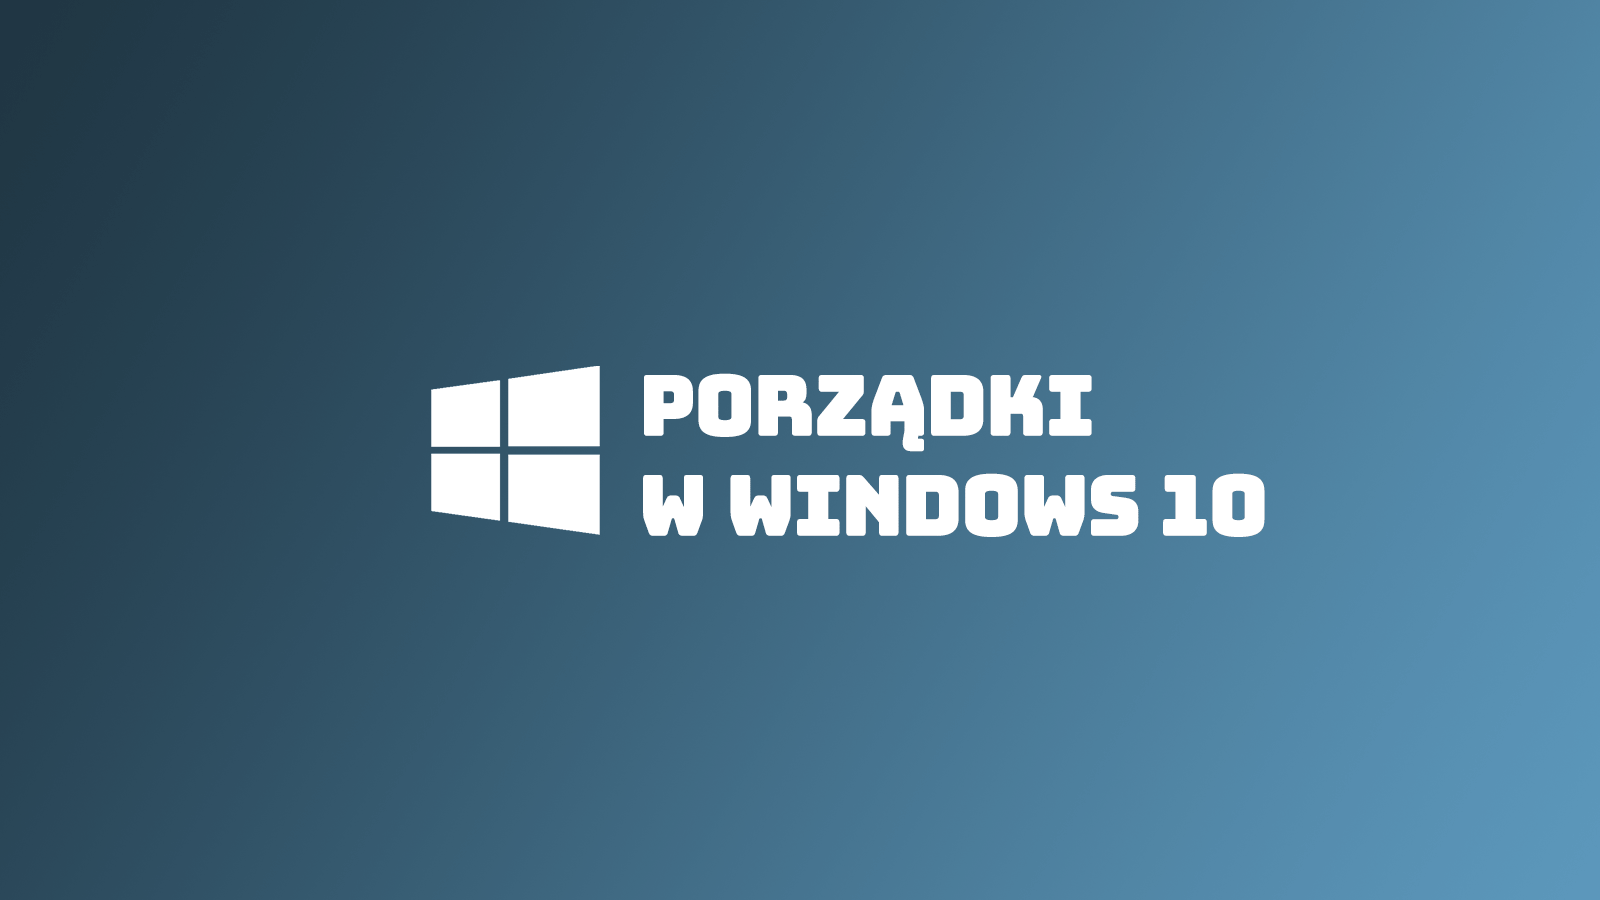 Porządki w Windows 10